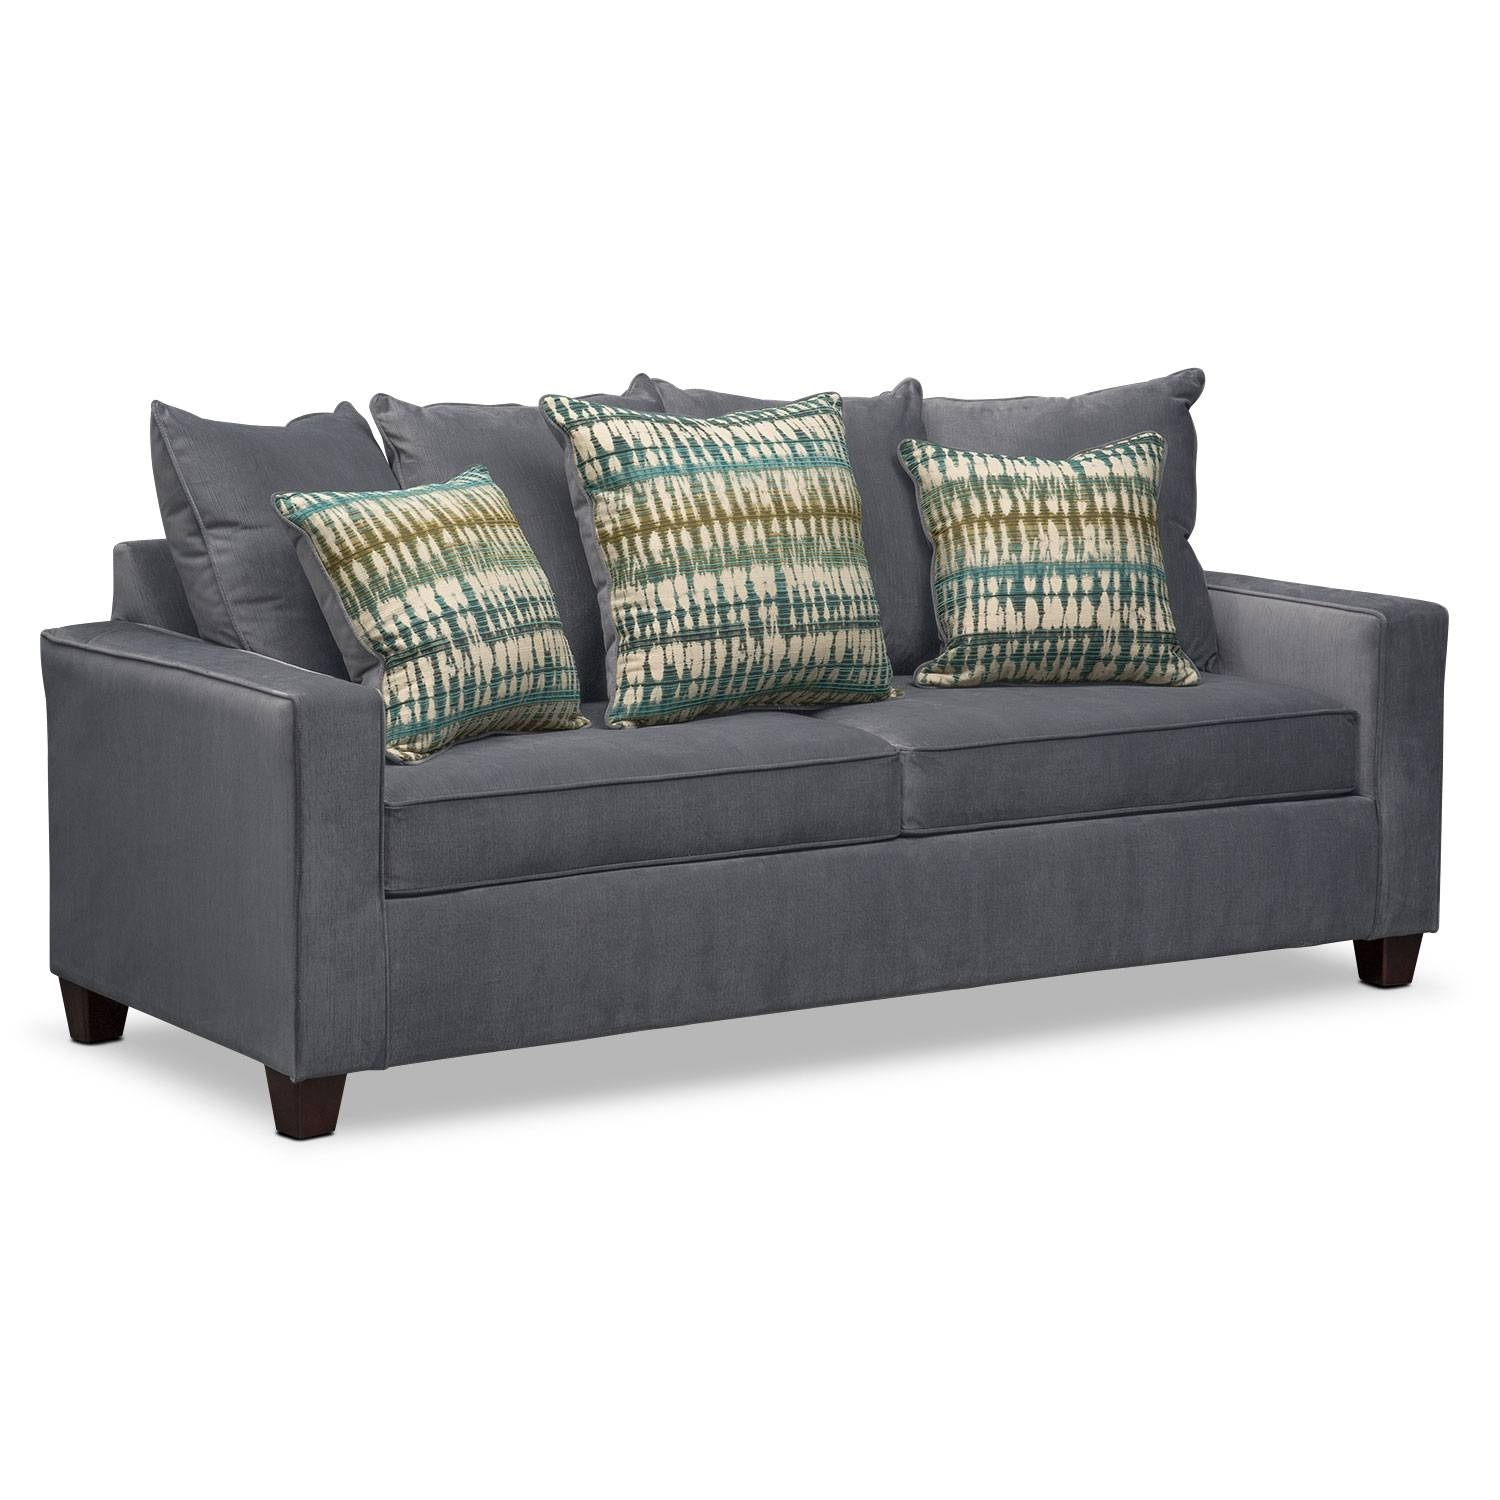 Bryden Sofa - Slate | Value City Furniture for Grey Sofa Chairs (Image 7 of 30)